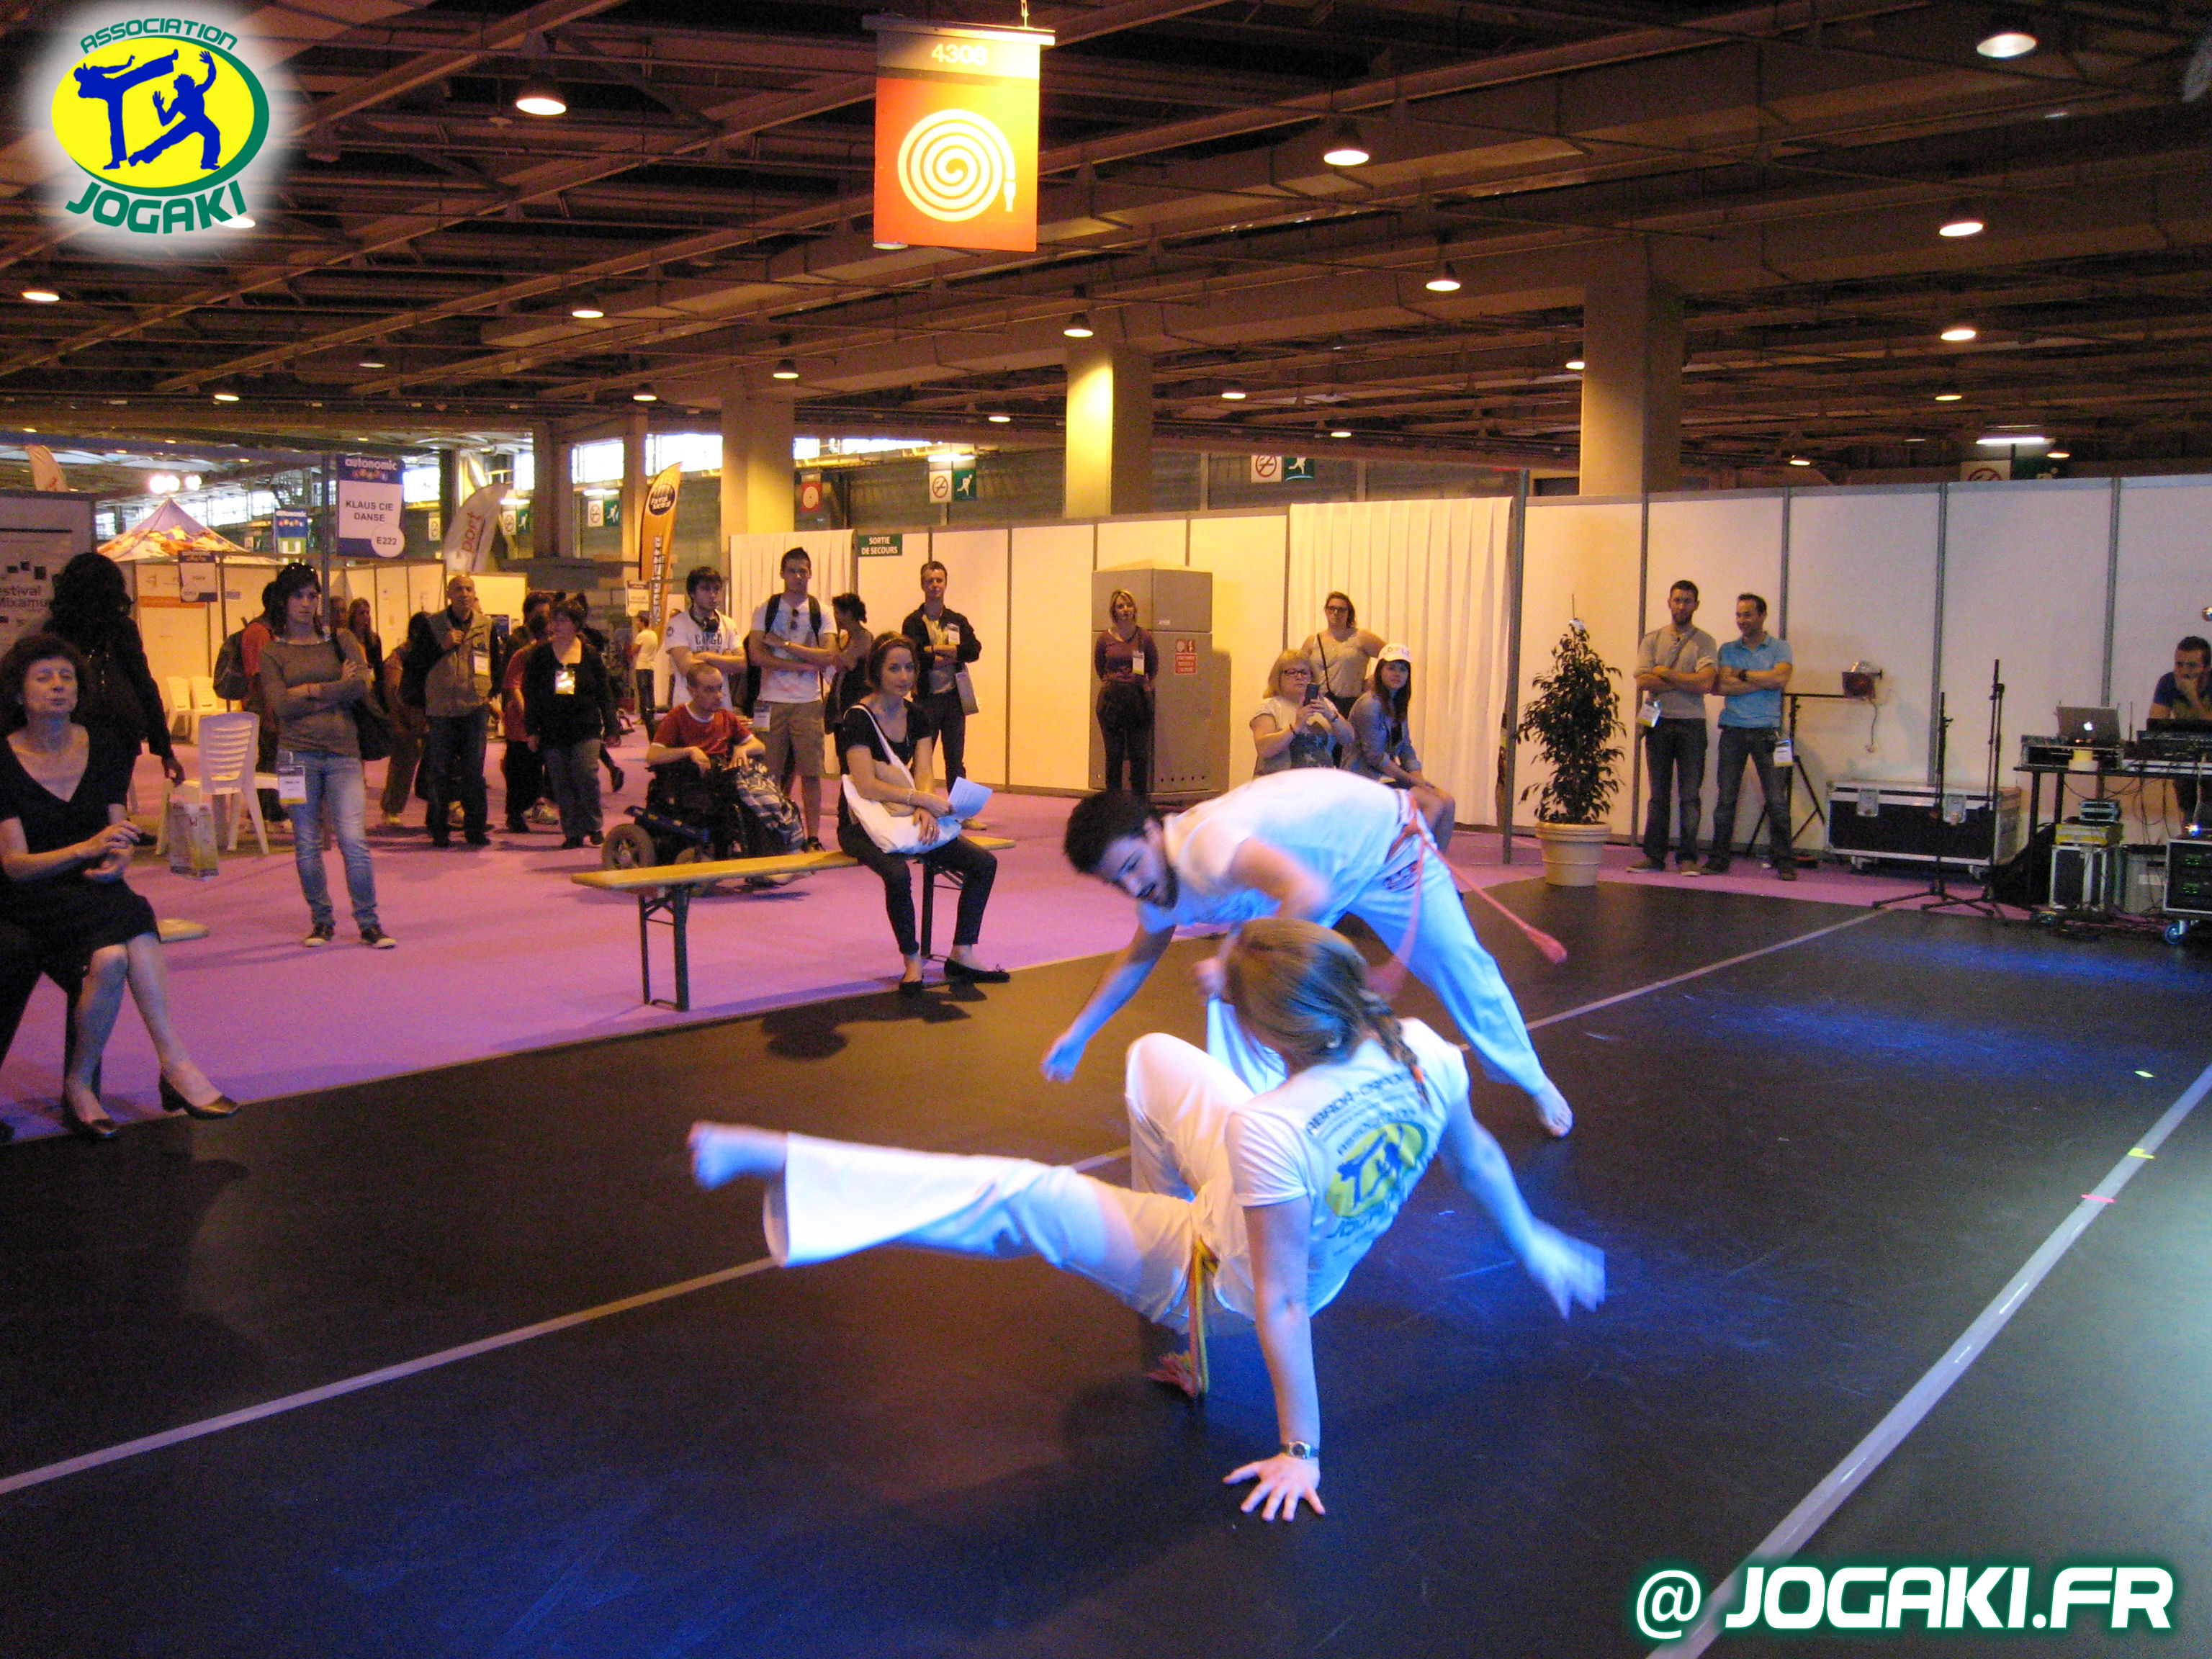 association-capoeira-paris-jogaki-293